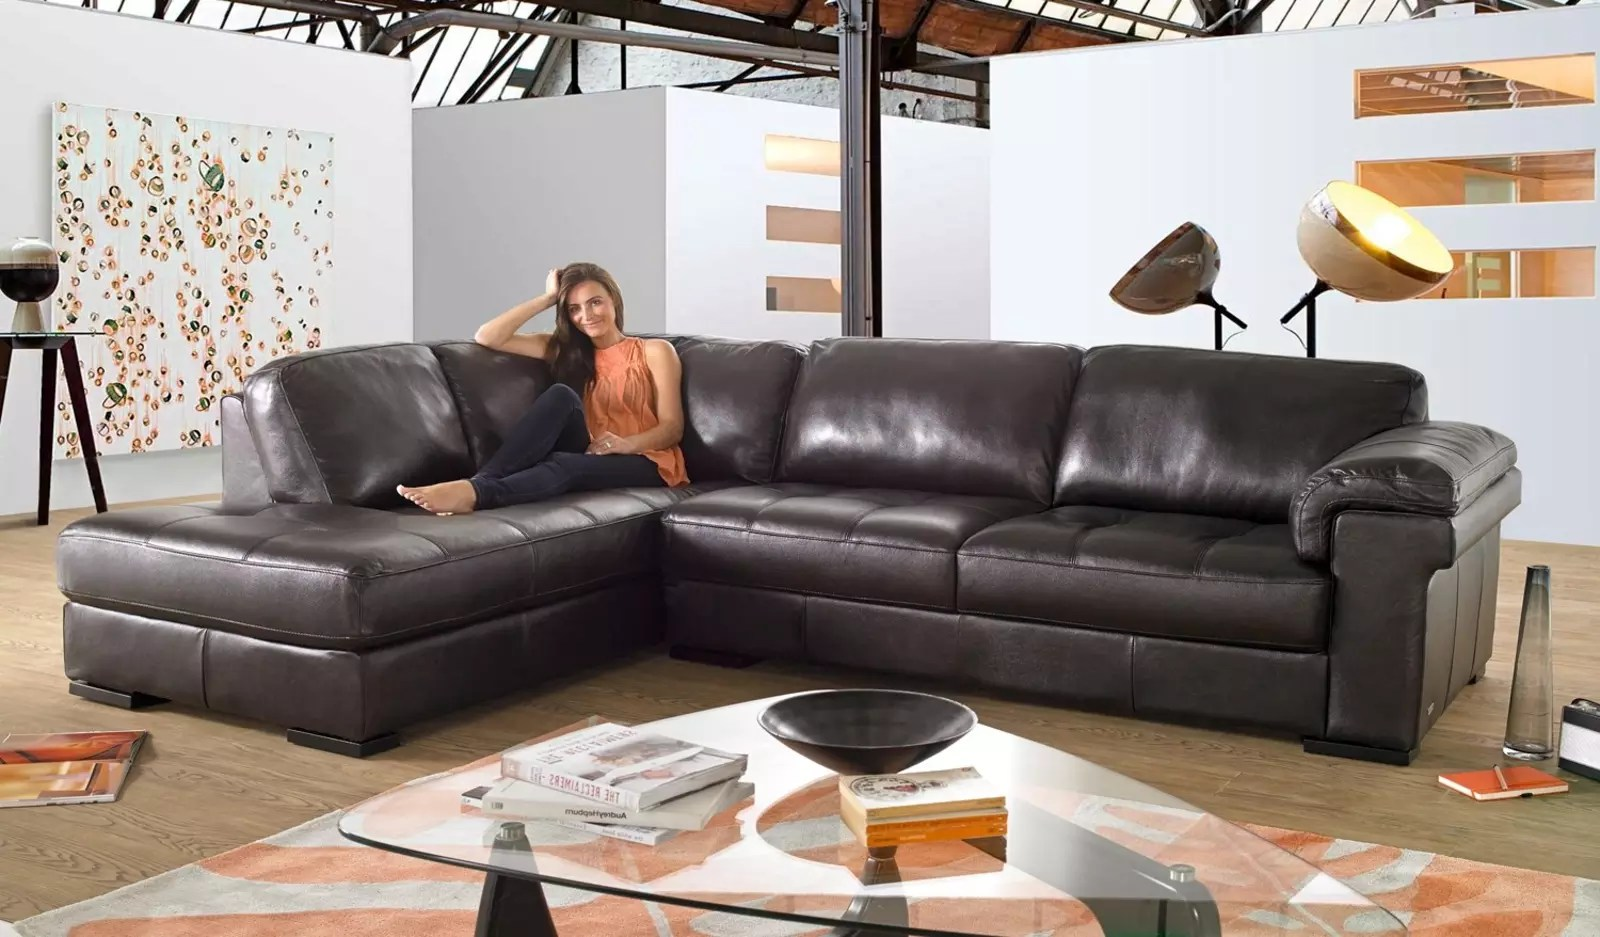 sofaore knoxville tn steel sofa set designs with price in india corner the range pertaining to encourage rimini sofology